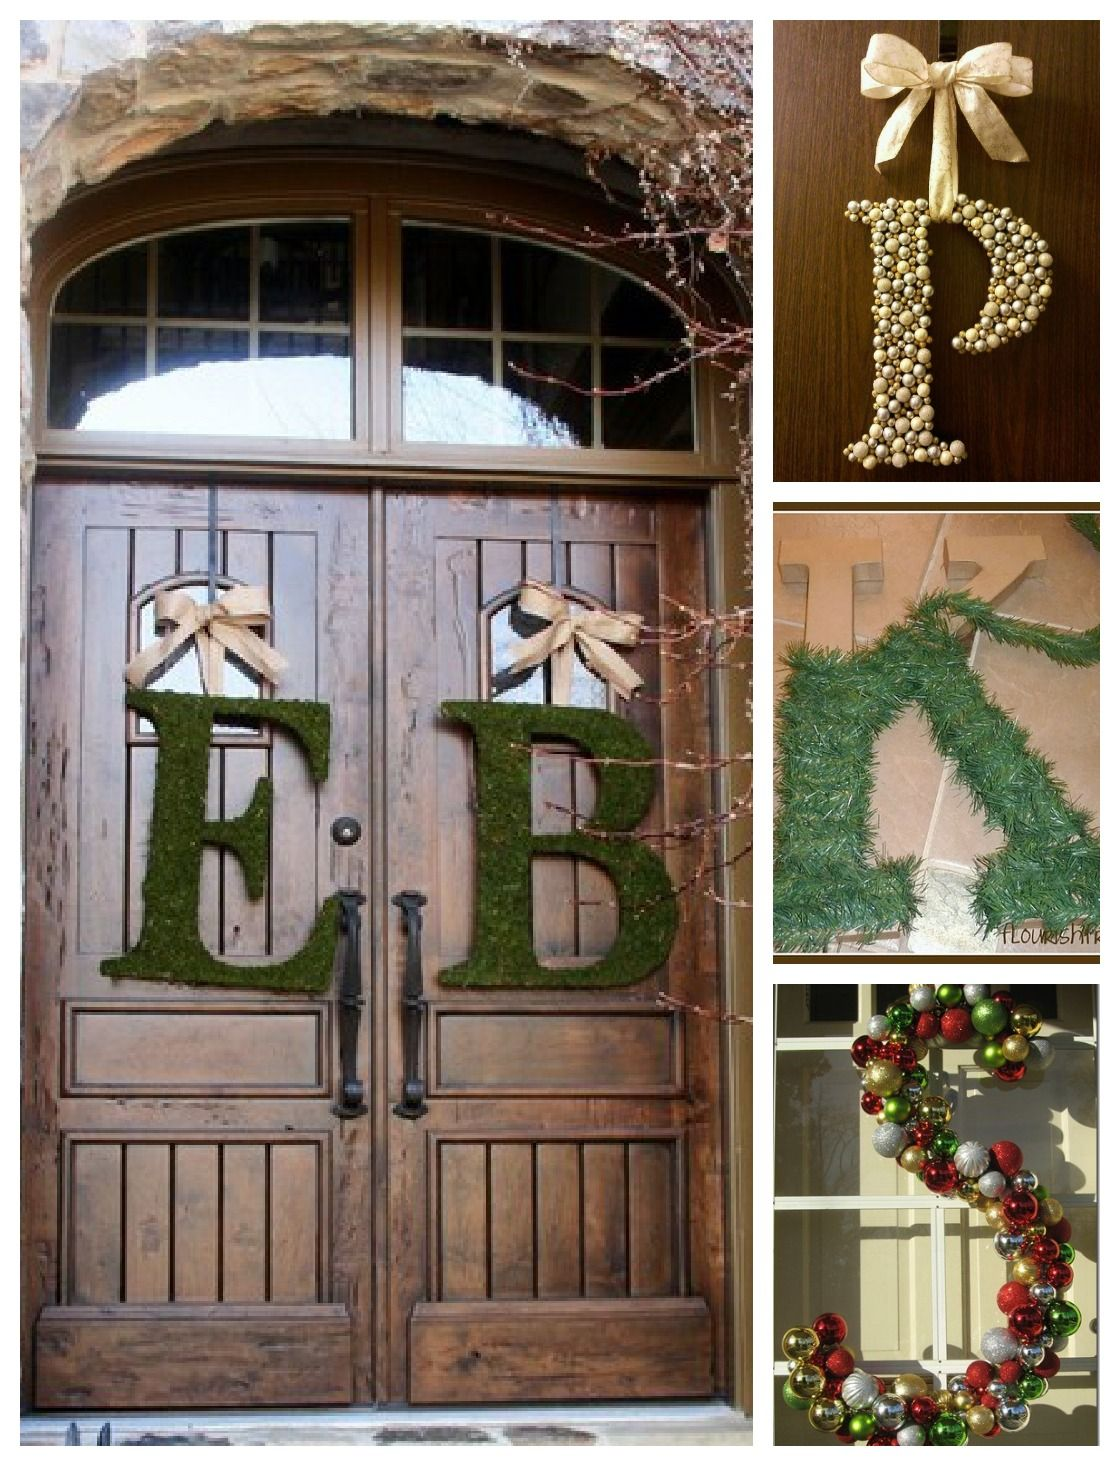 Last minute diy wedding decorations  My Kinda Happy Cute Wreaths and Last Minute Christmas Gifts and